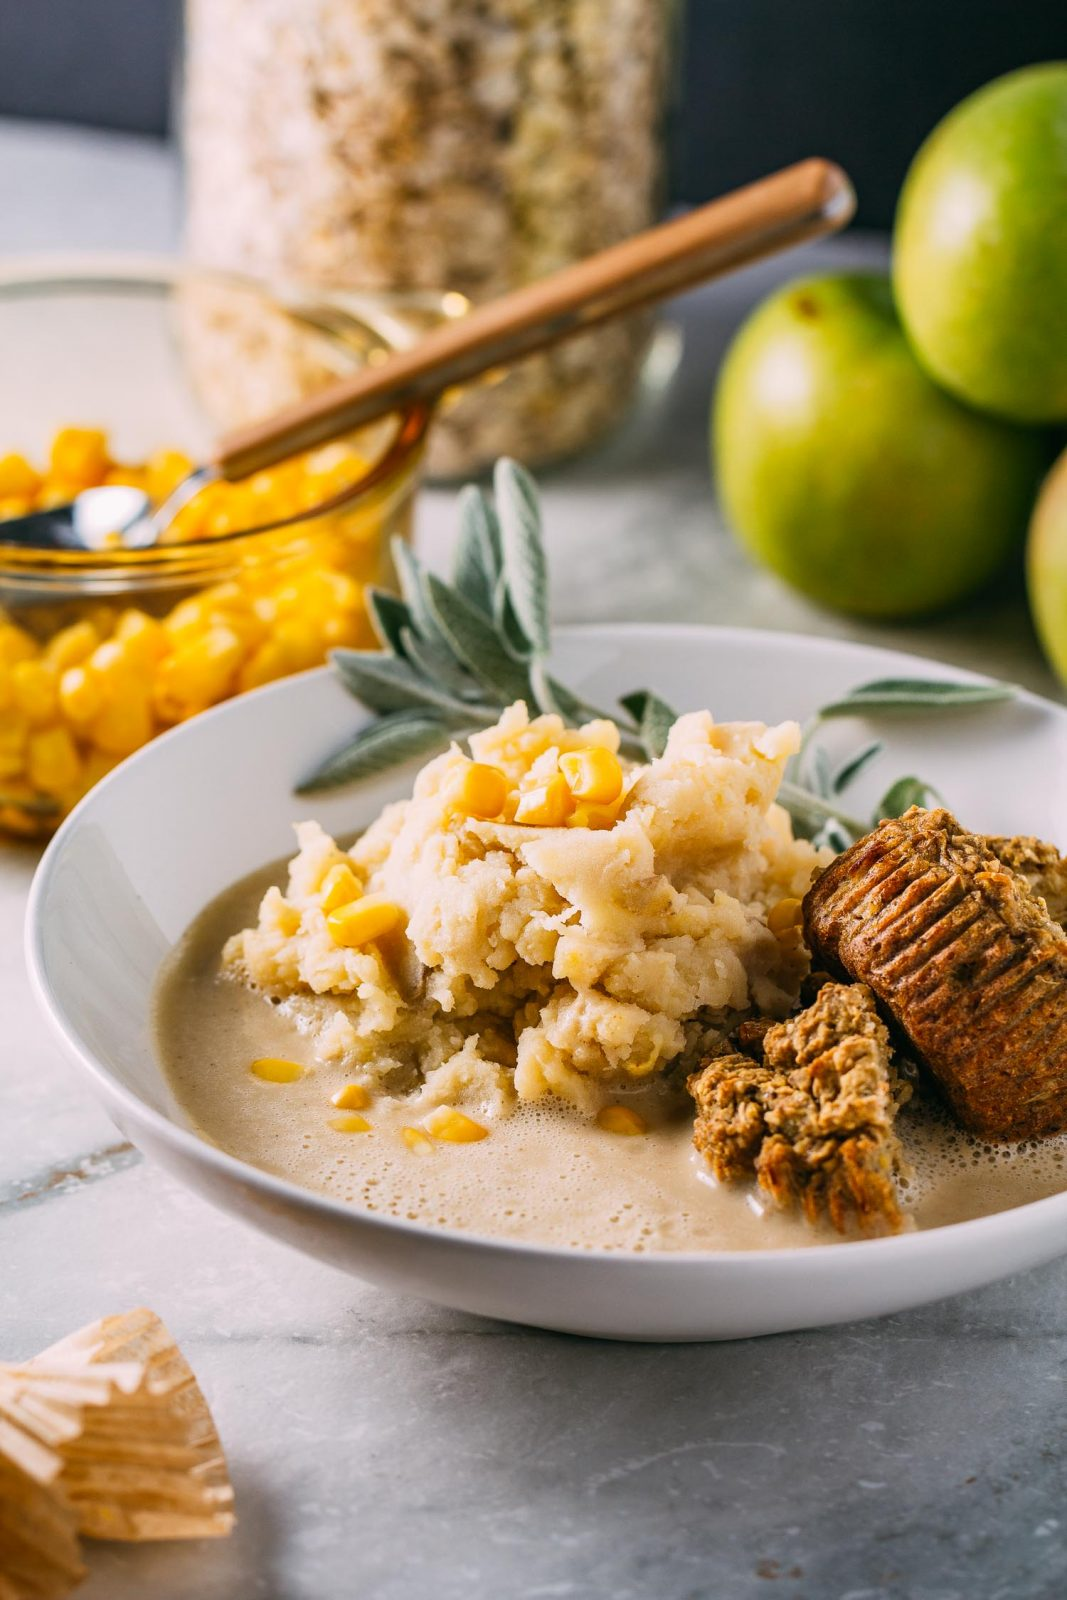 These healthy mashed potatoes and gravy are a delicious and hearty plant based thanksgiving side dish.